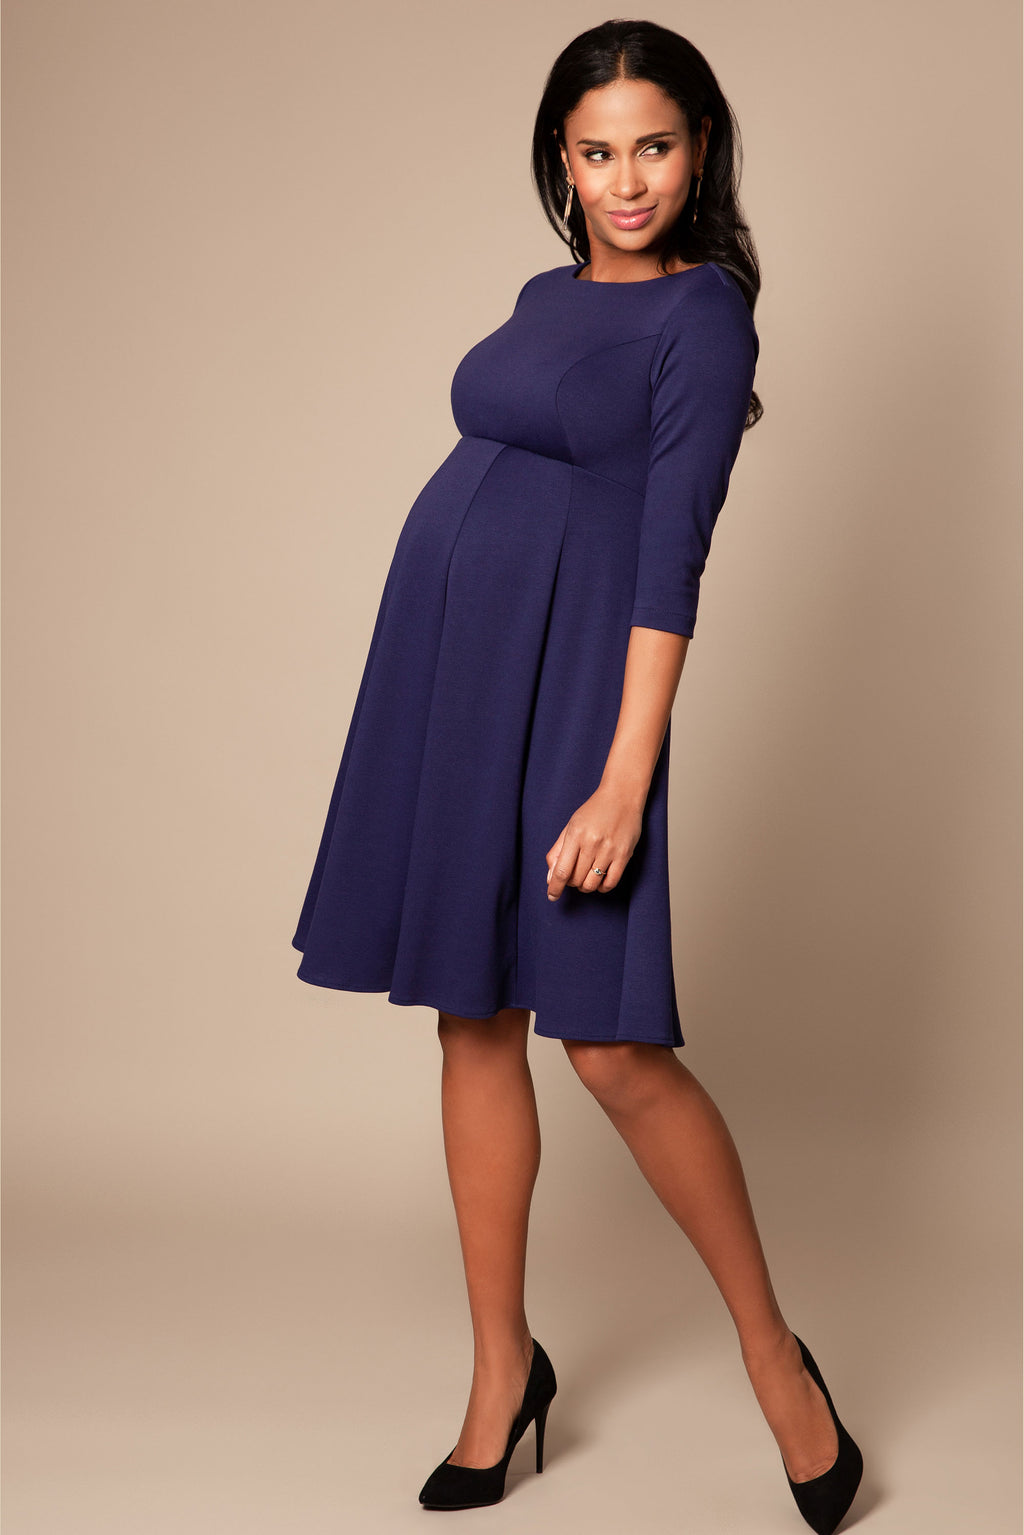 Tiffany Rose Sienna Maternity Dress in Persian Blue